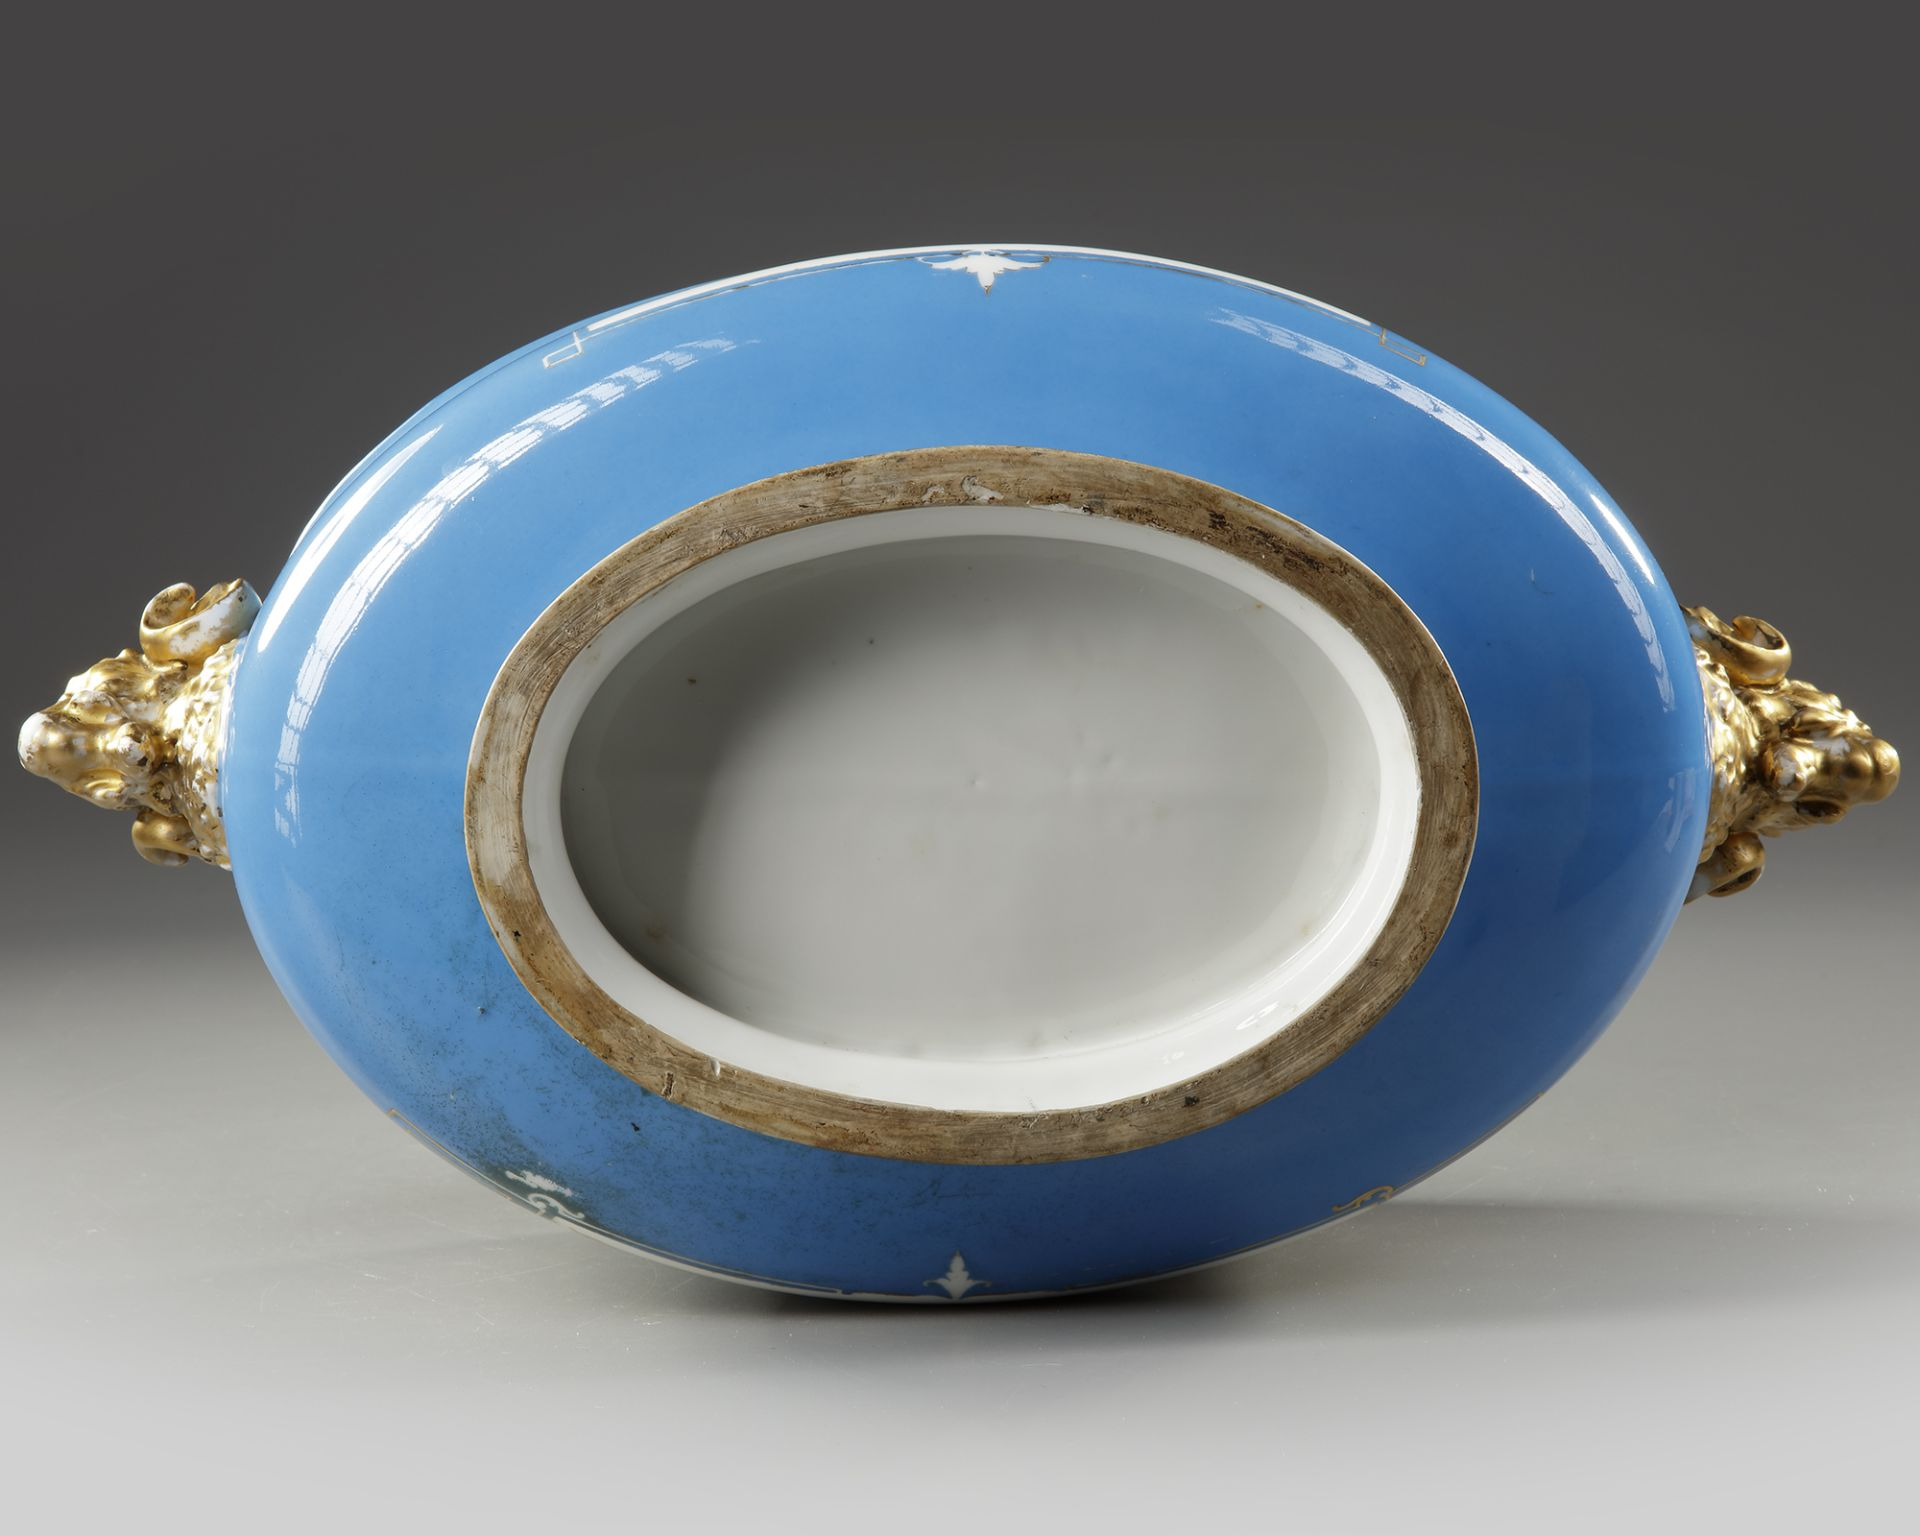 A FRENCH SEVRES PORCELAIN CUP, LATE 19TH CENTURY - Image 5 of 5